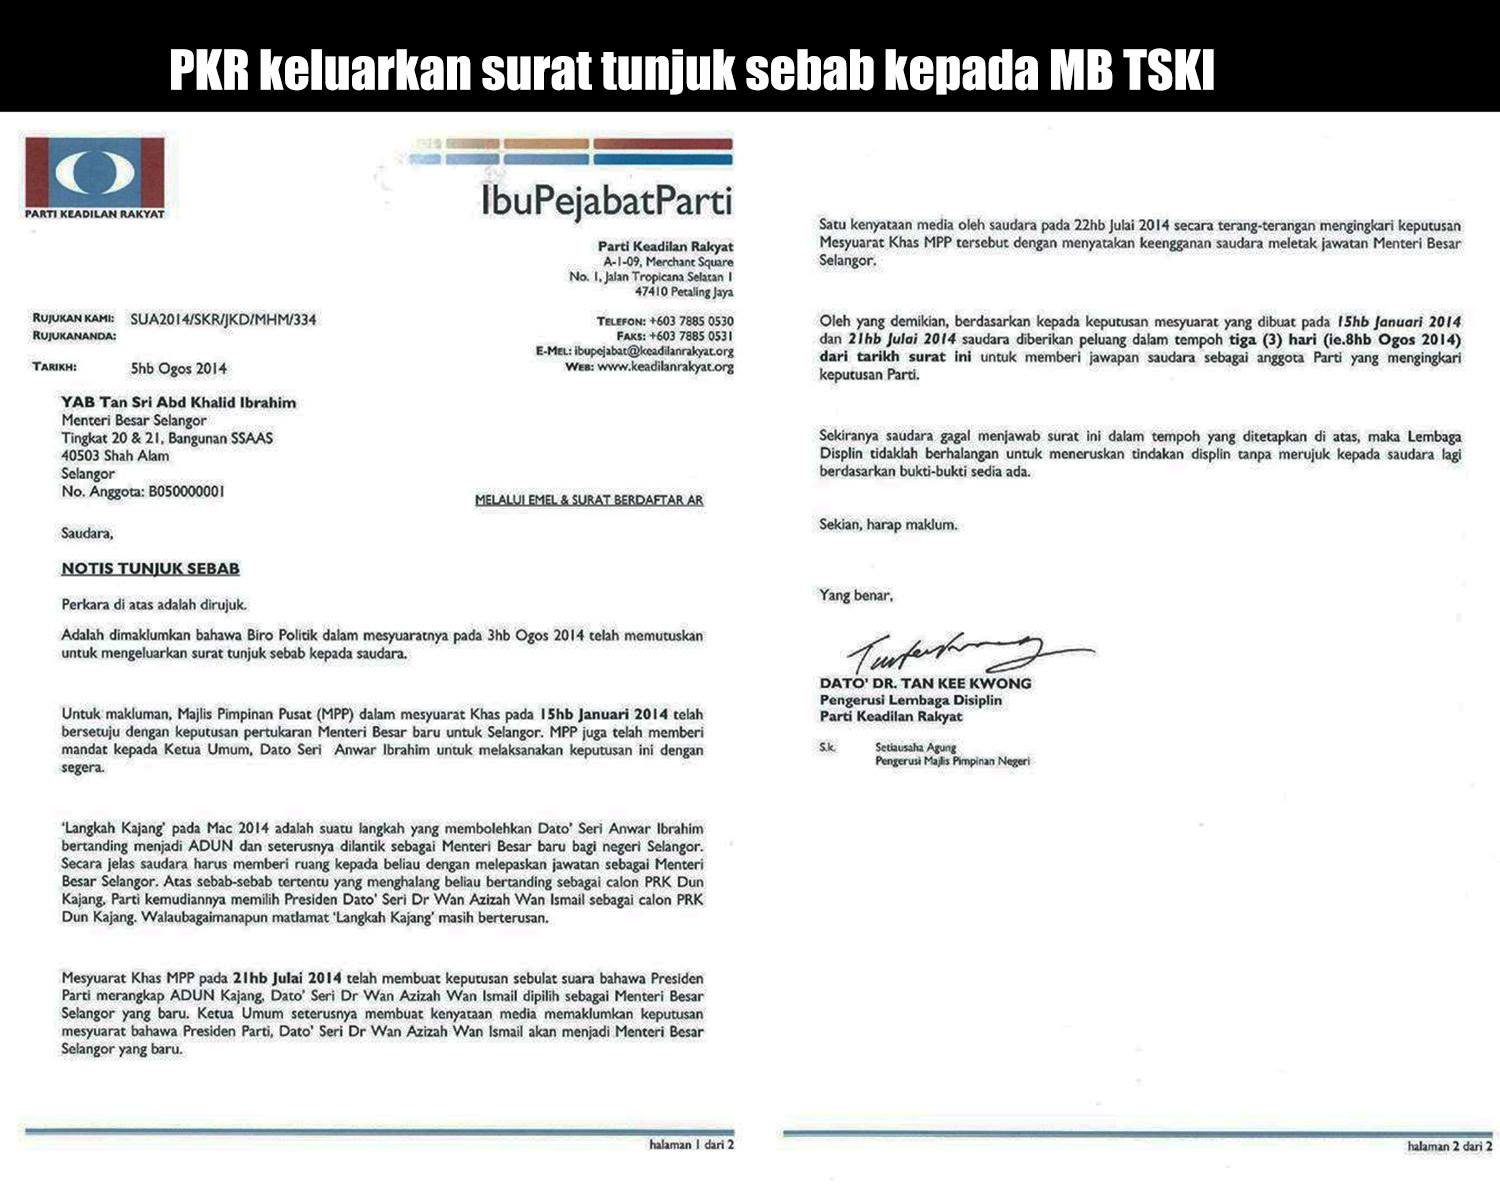 PKR issues show-cause letter to Khalid